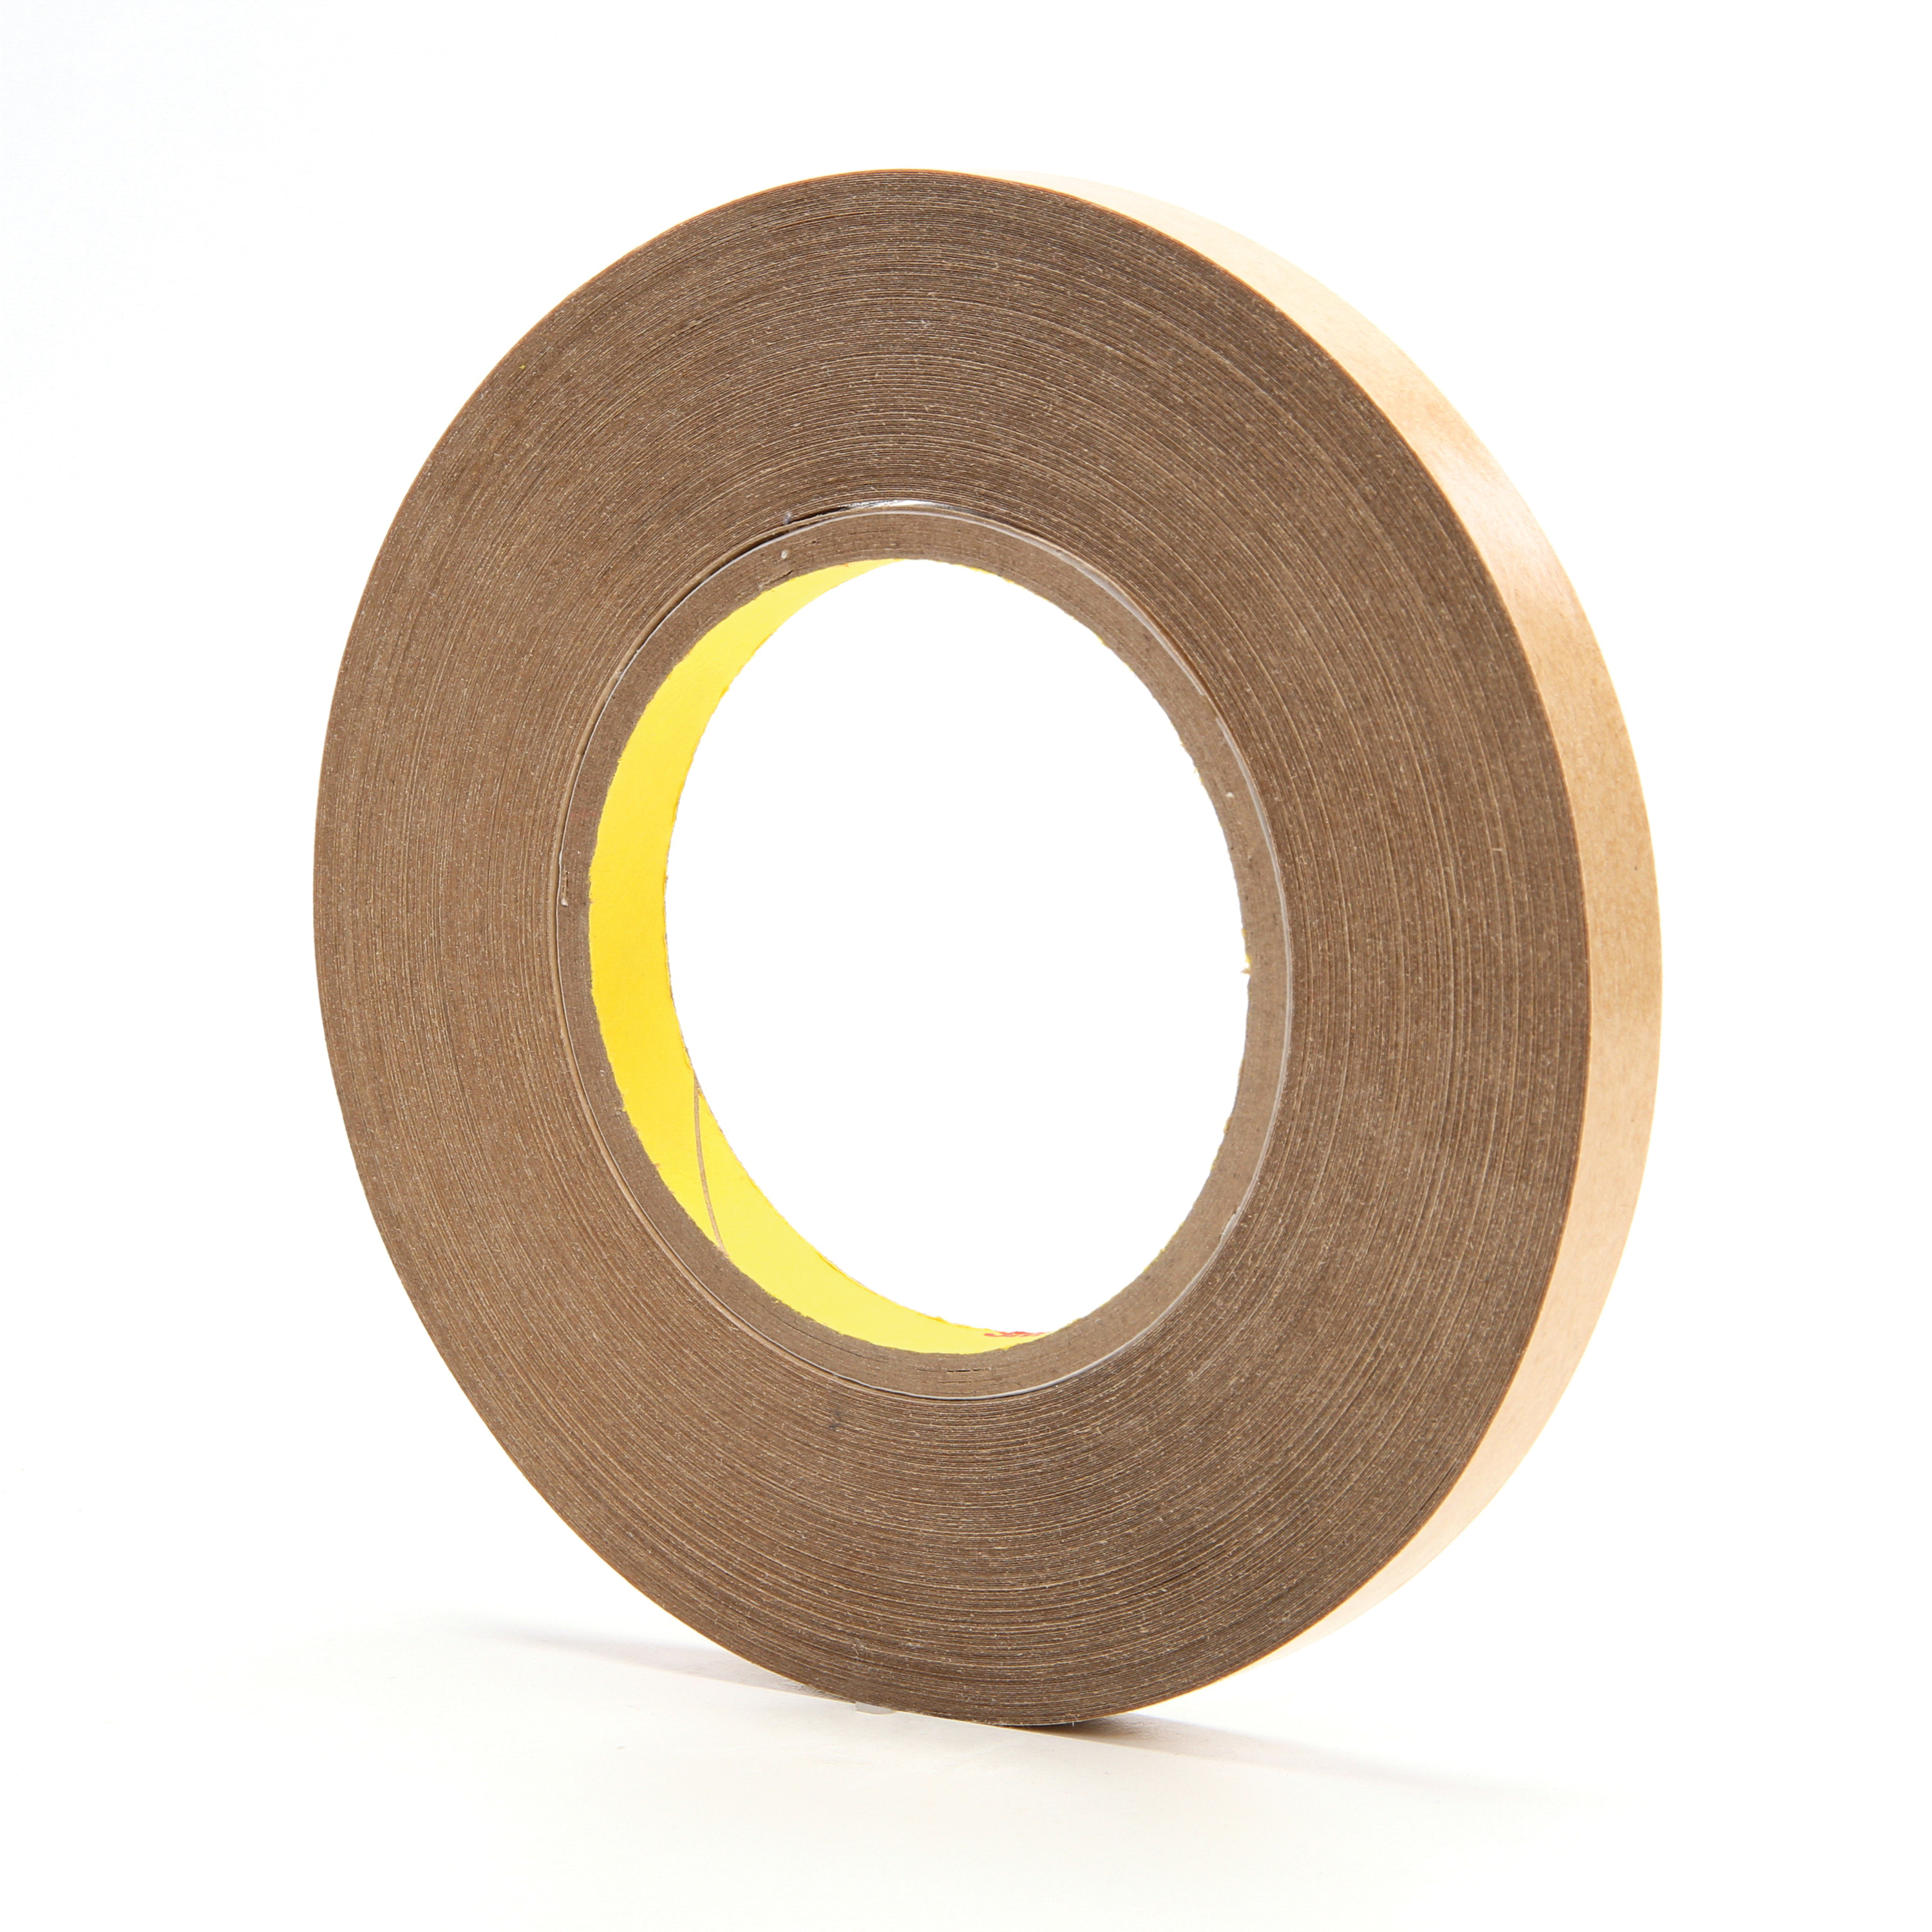 3M™ 021200-04849 General Purpose High Tack Adhesive Transfer Tape, 60 yd L x 1/2 in W, 8.5 mil THK, 5 mil 300 Acrylic Adhesive, Clear